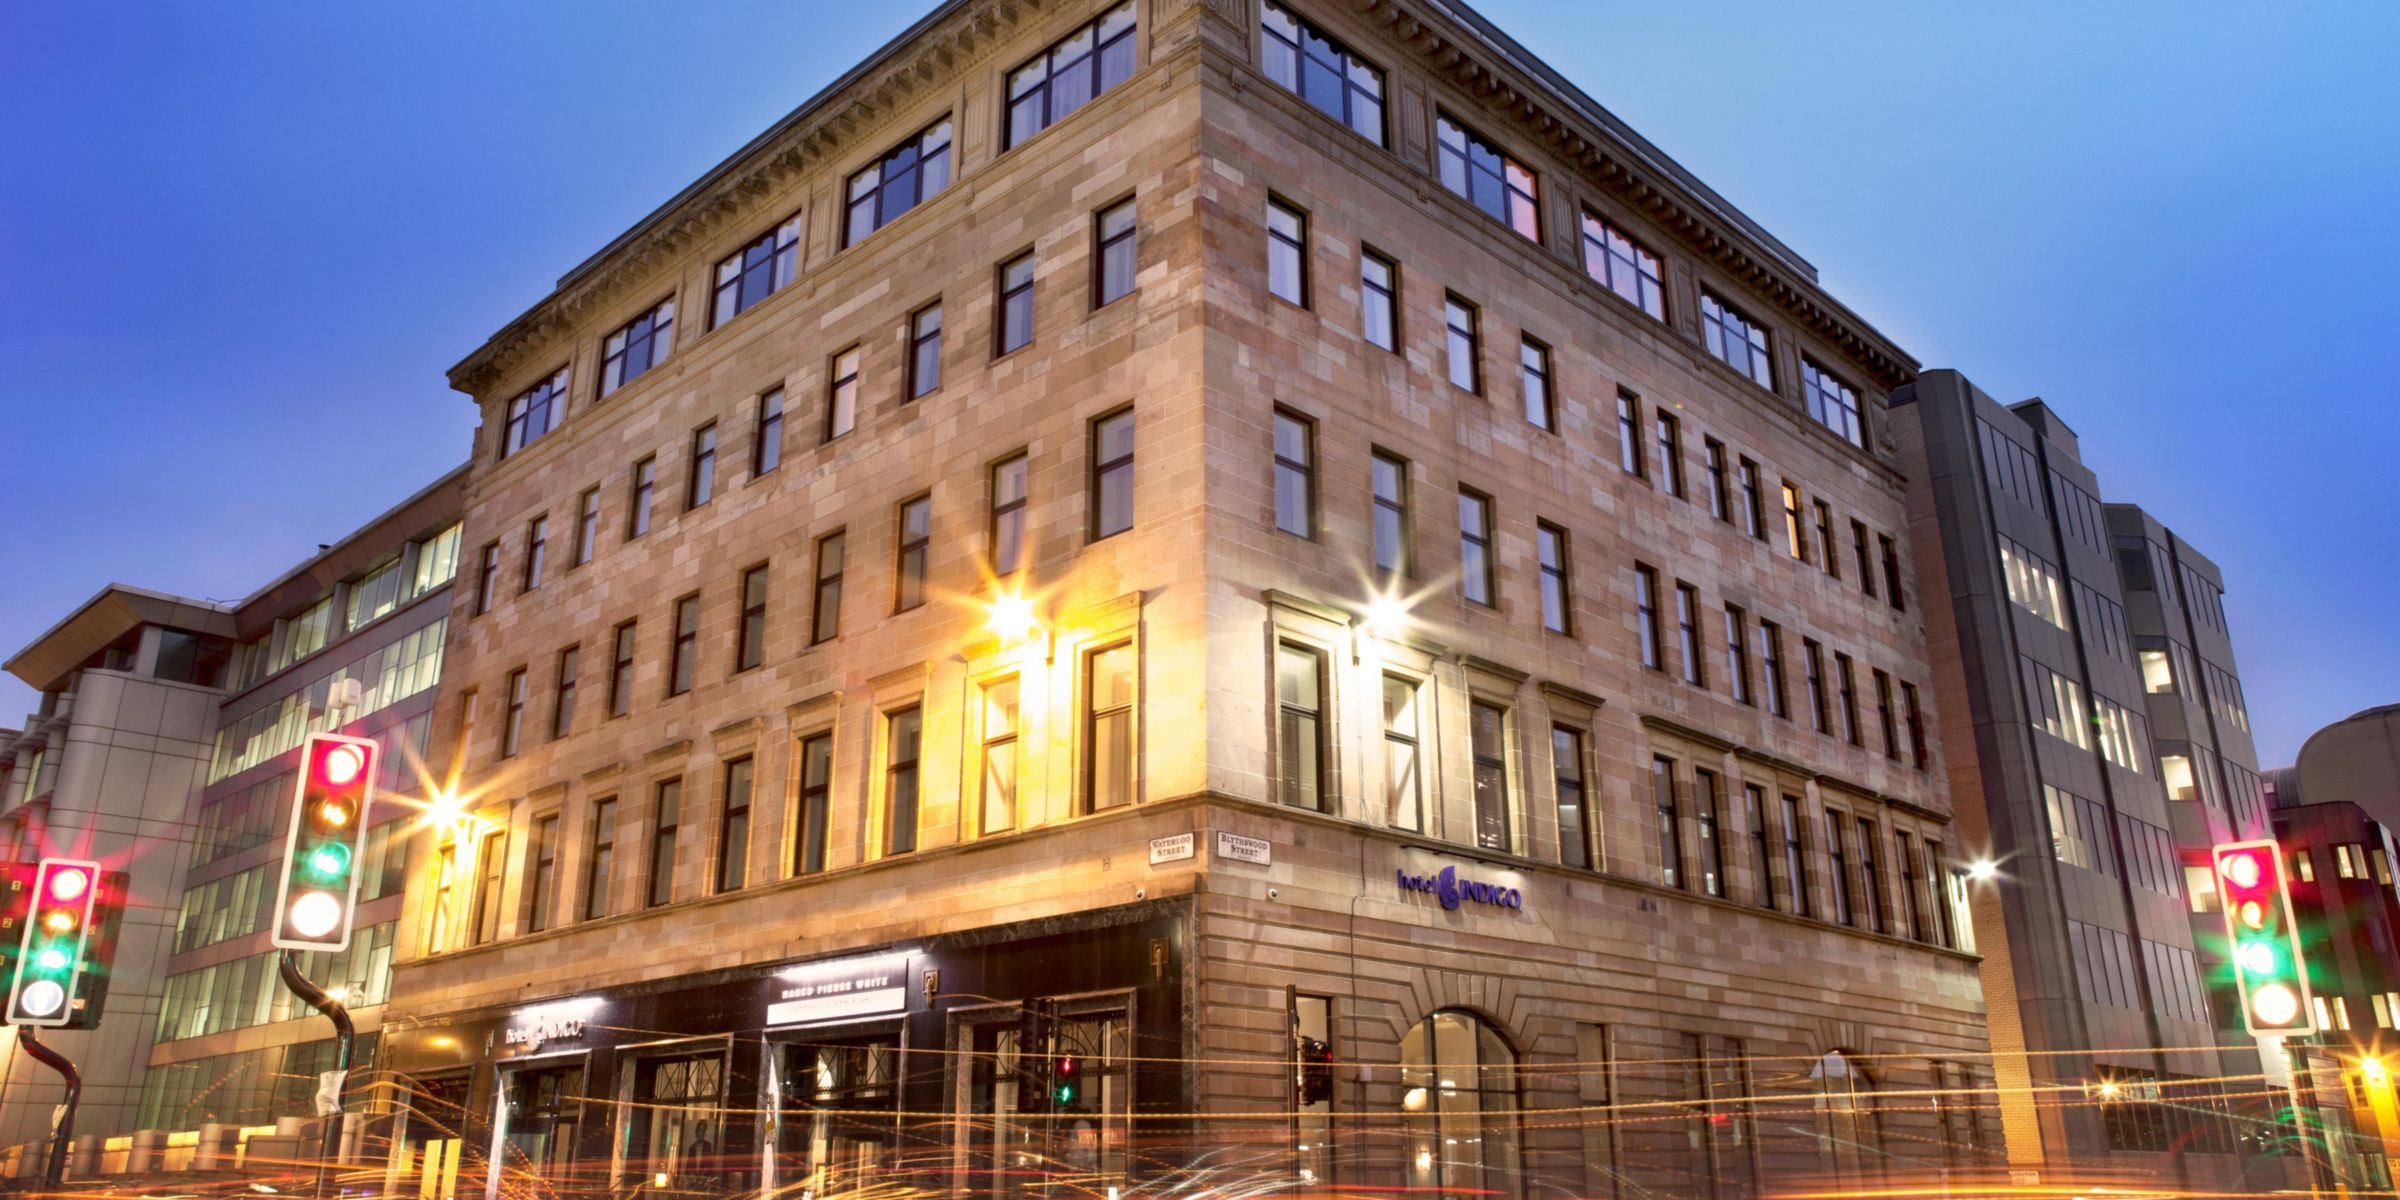 Hotel Indigo Enjoys A Peaceful Location At Night Glasgow